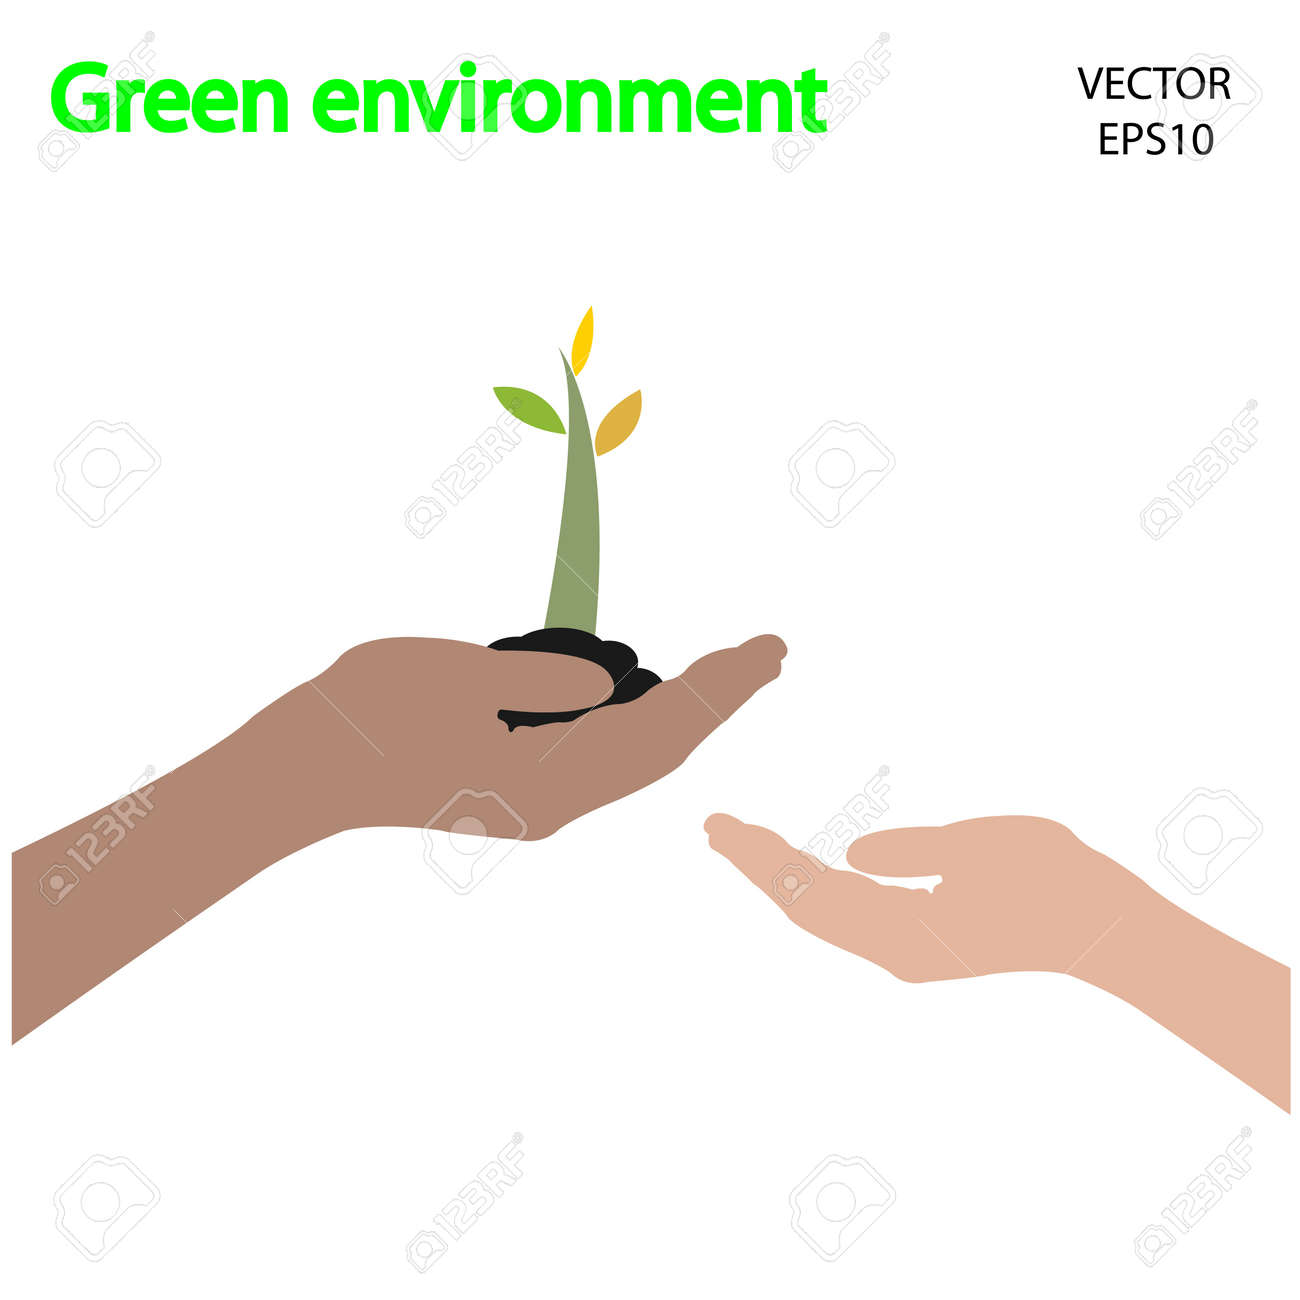 small tree and hands symbol,vector Stock Vector - 18096241